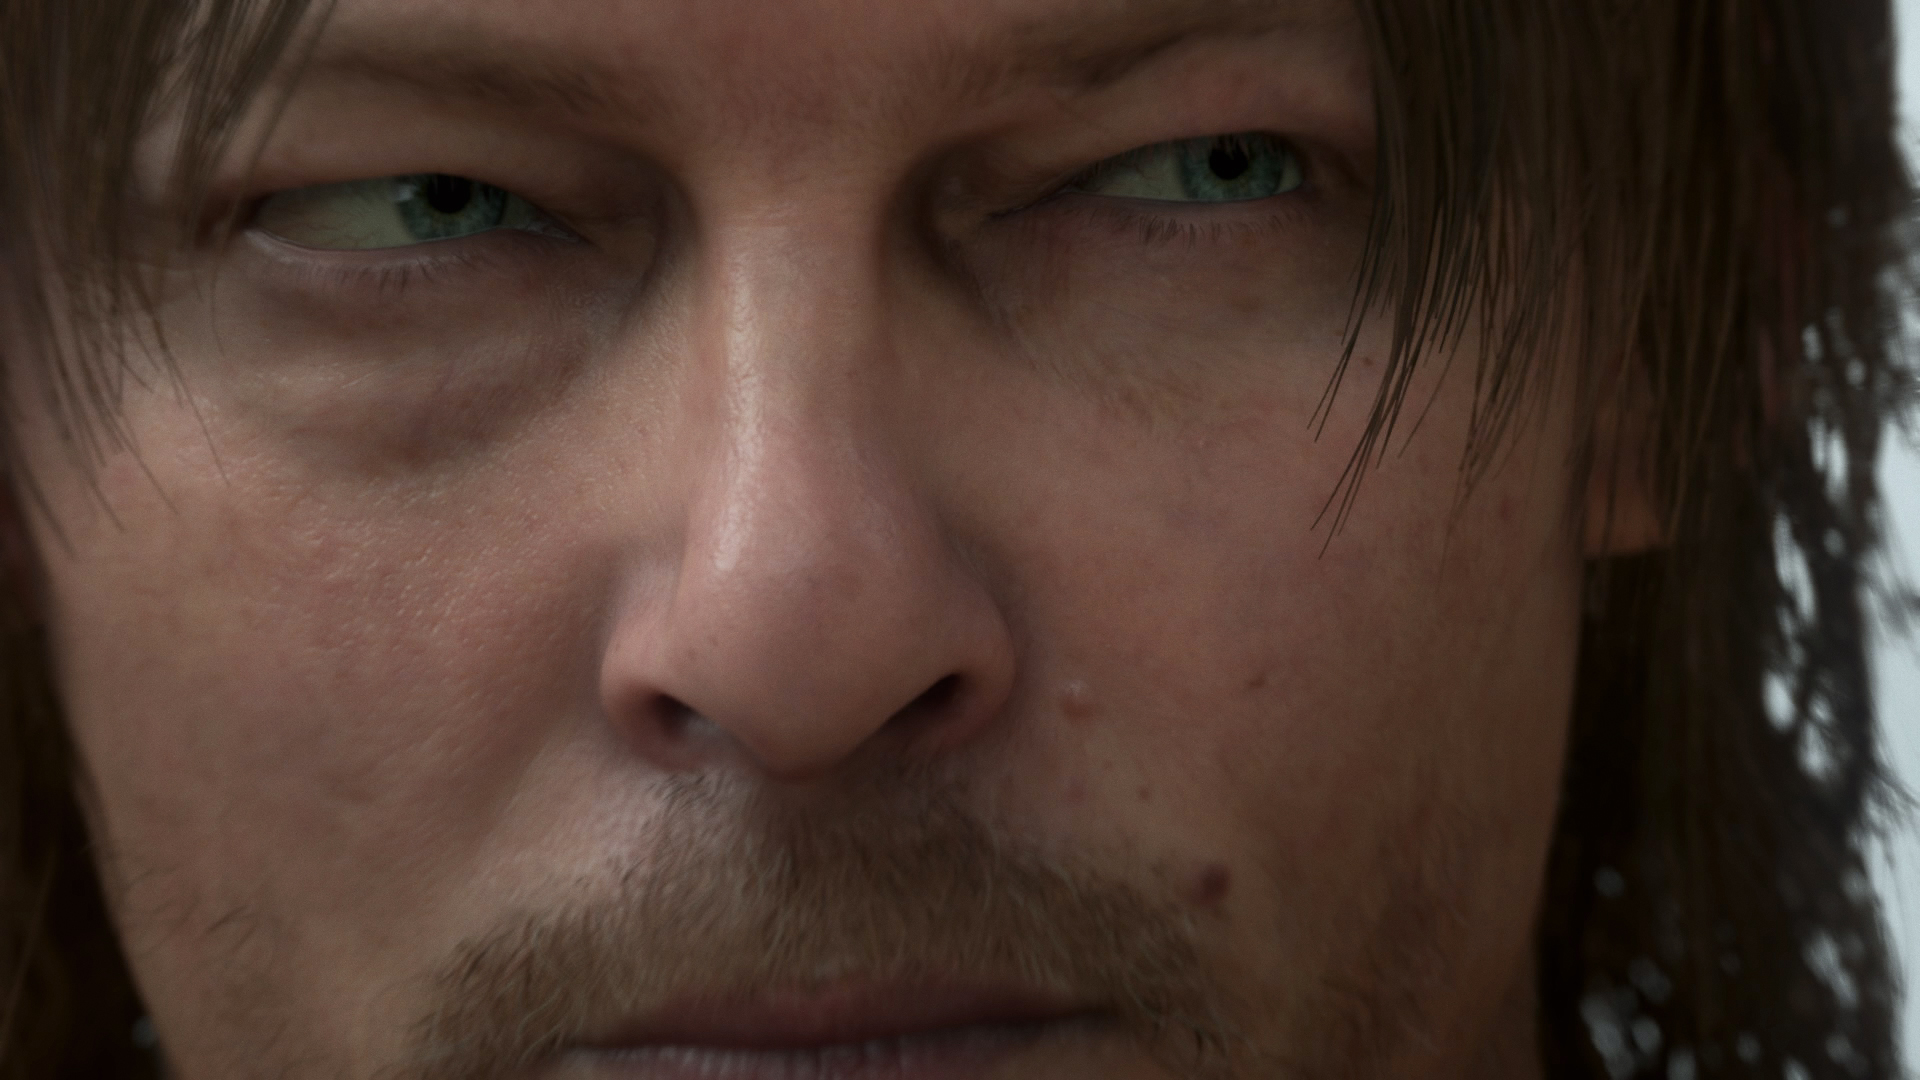 Death Stranding Details Emerge, Including Potential Release Date 3079381 deathstranding screen ps4 010 1465877397